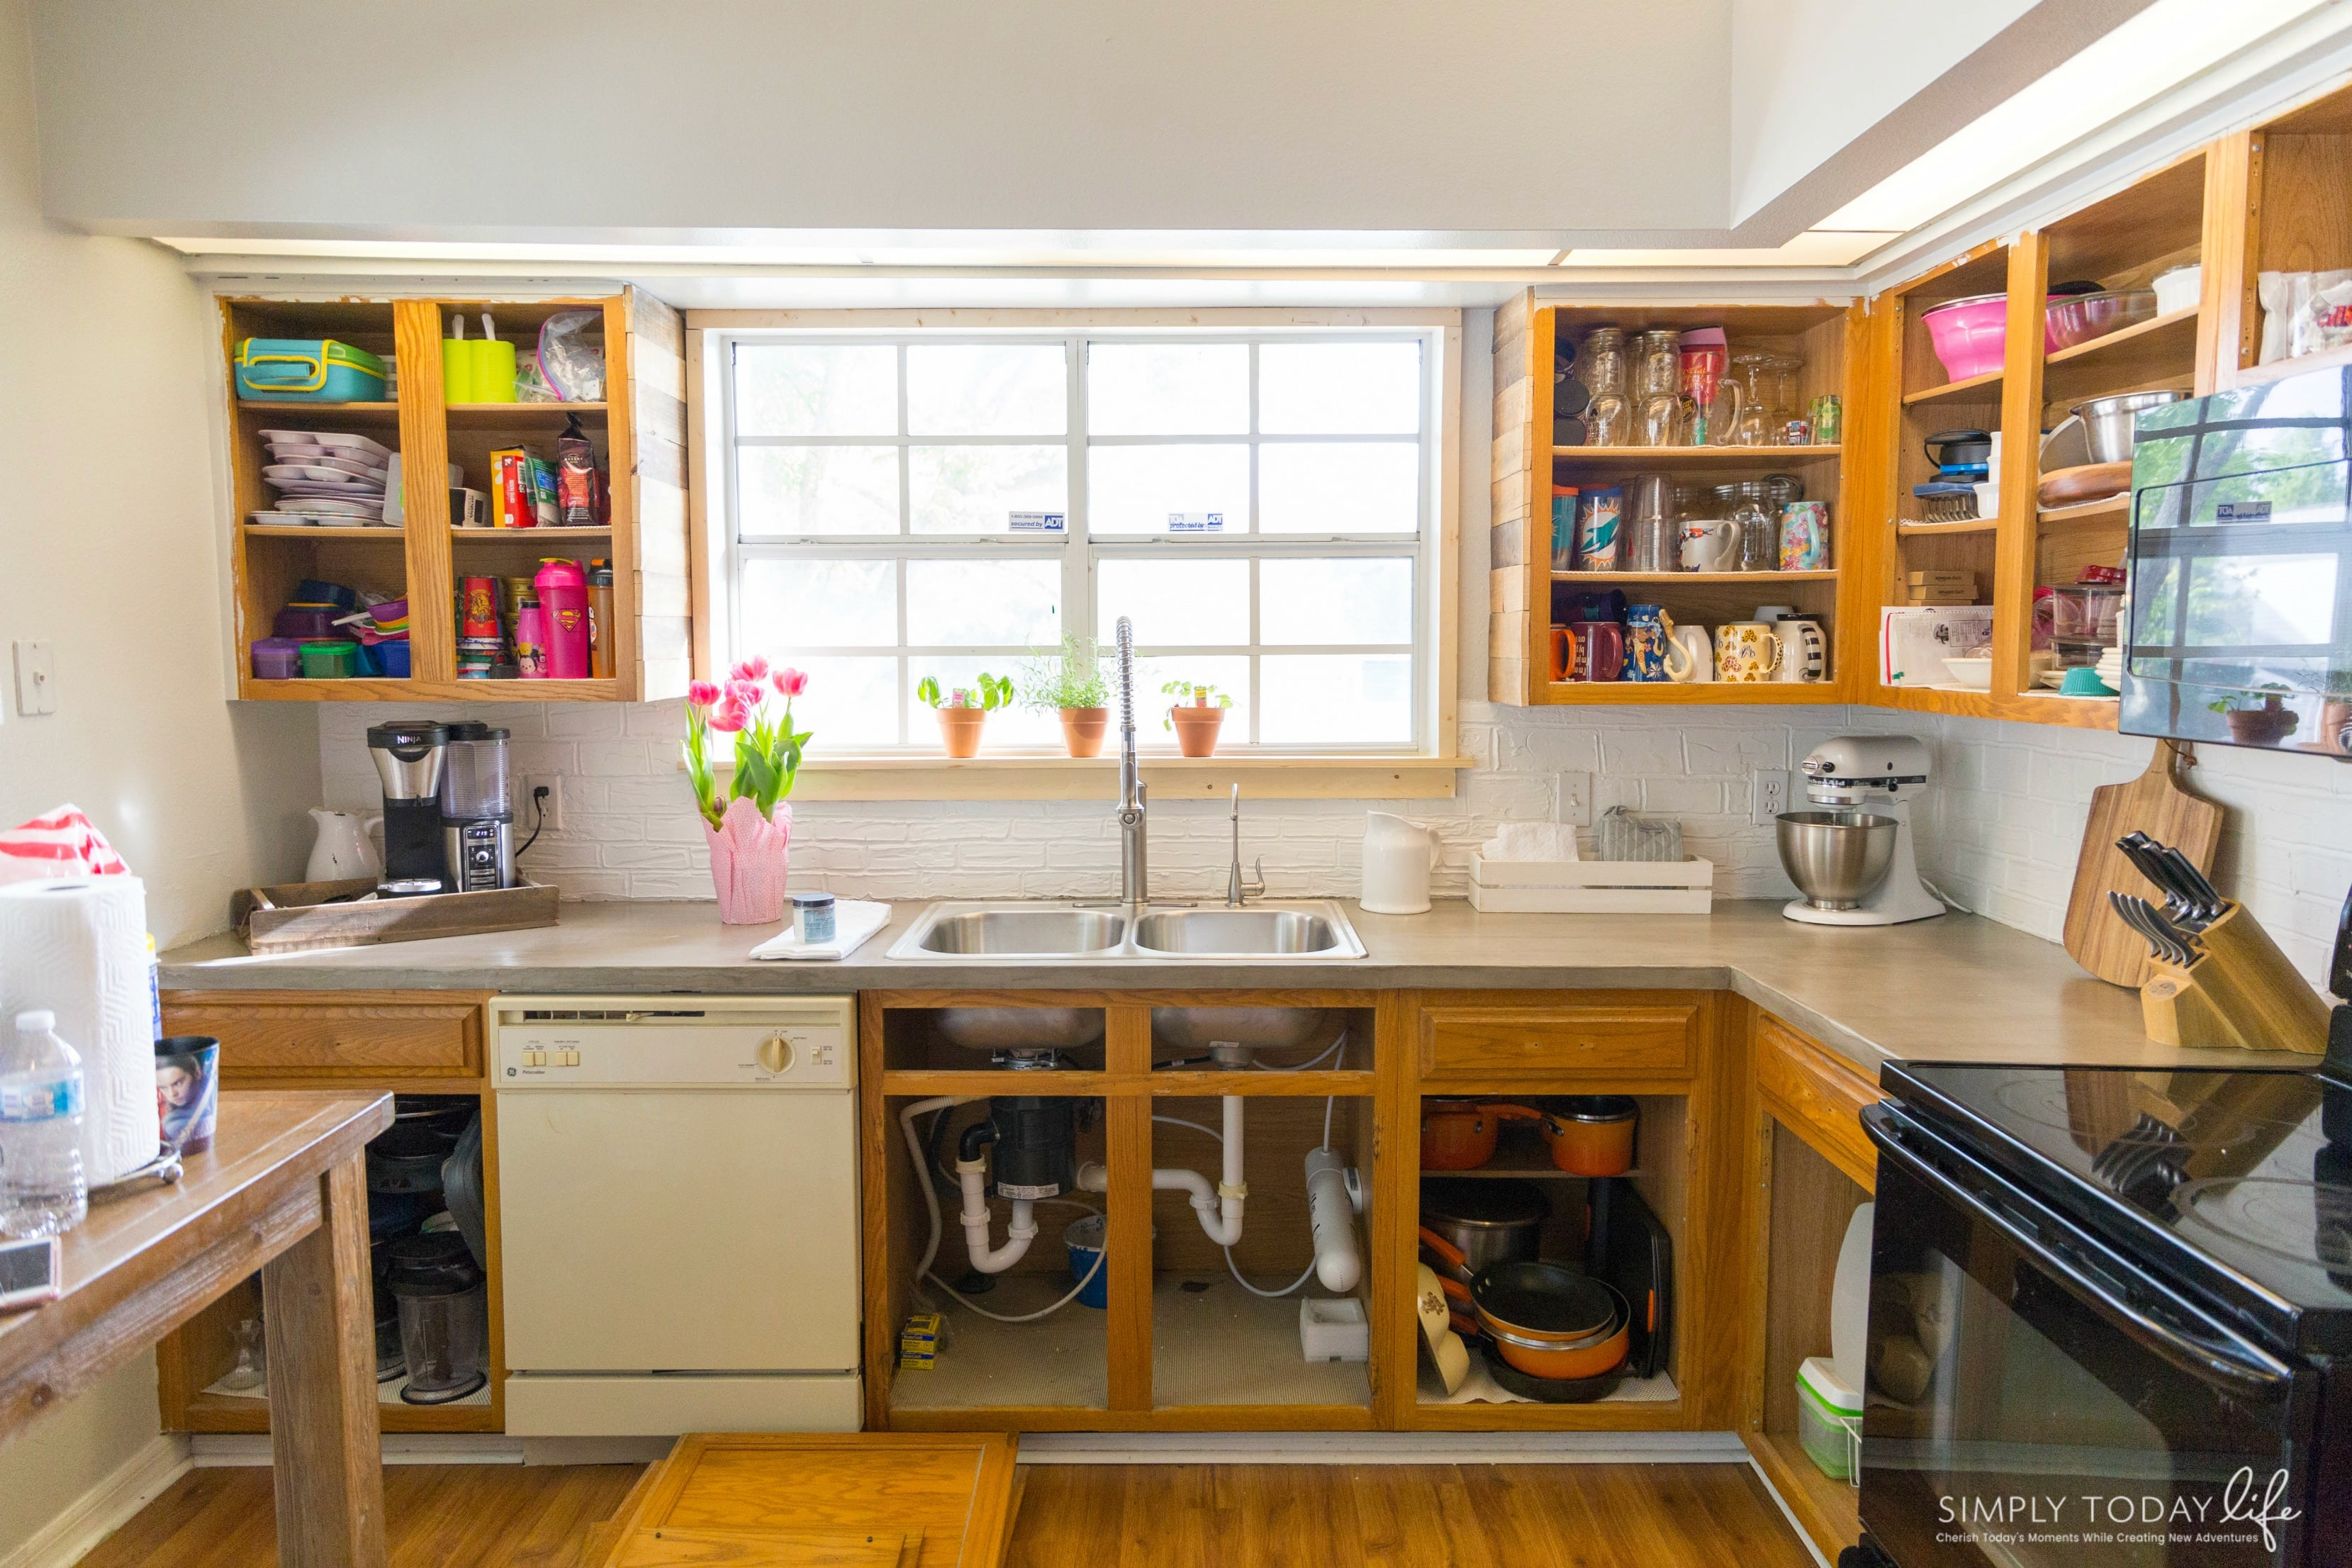 How To Paint Kitchen Cabinets With Chalk Paint - simplytodaylife.com